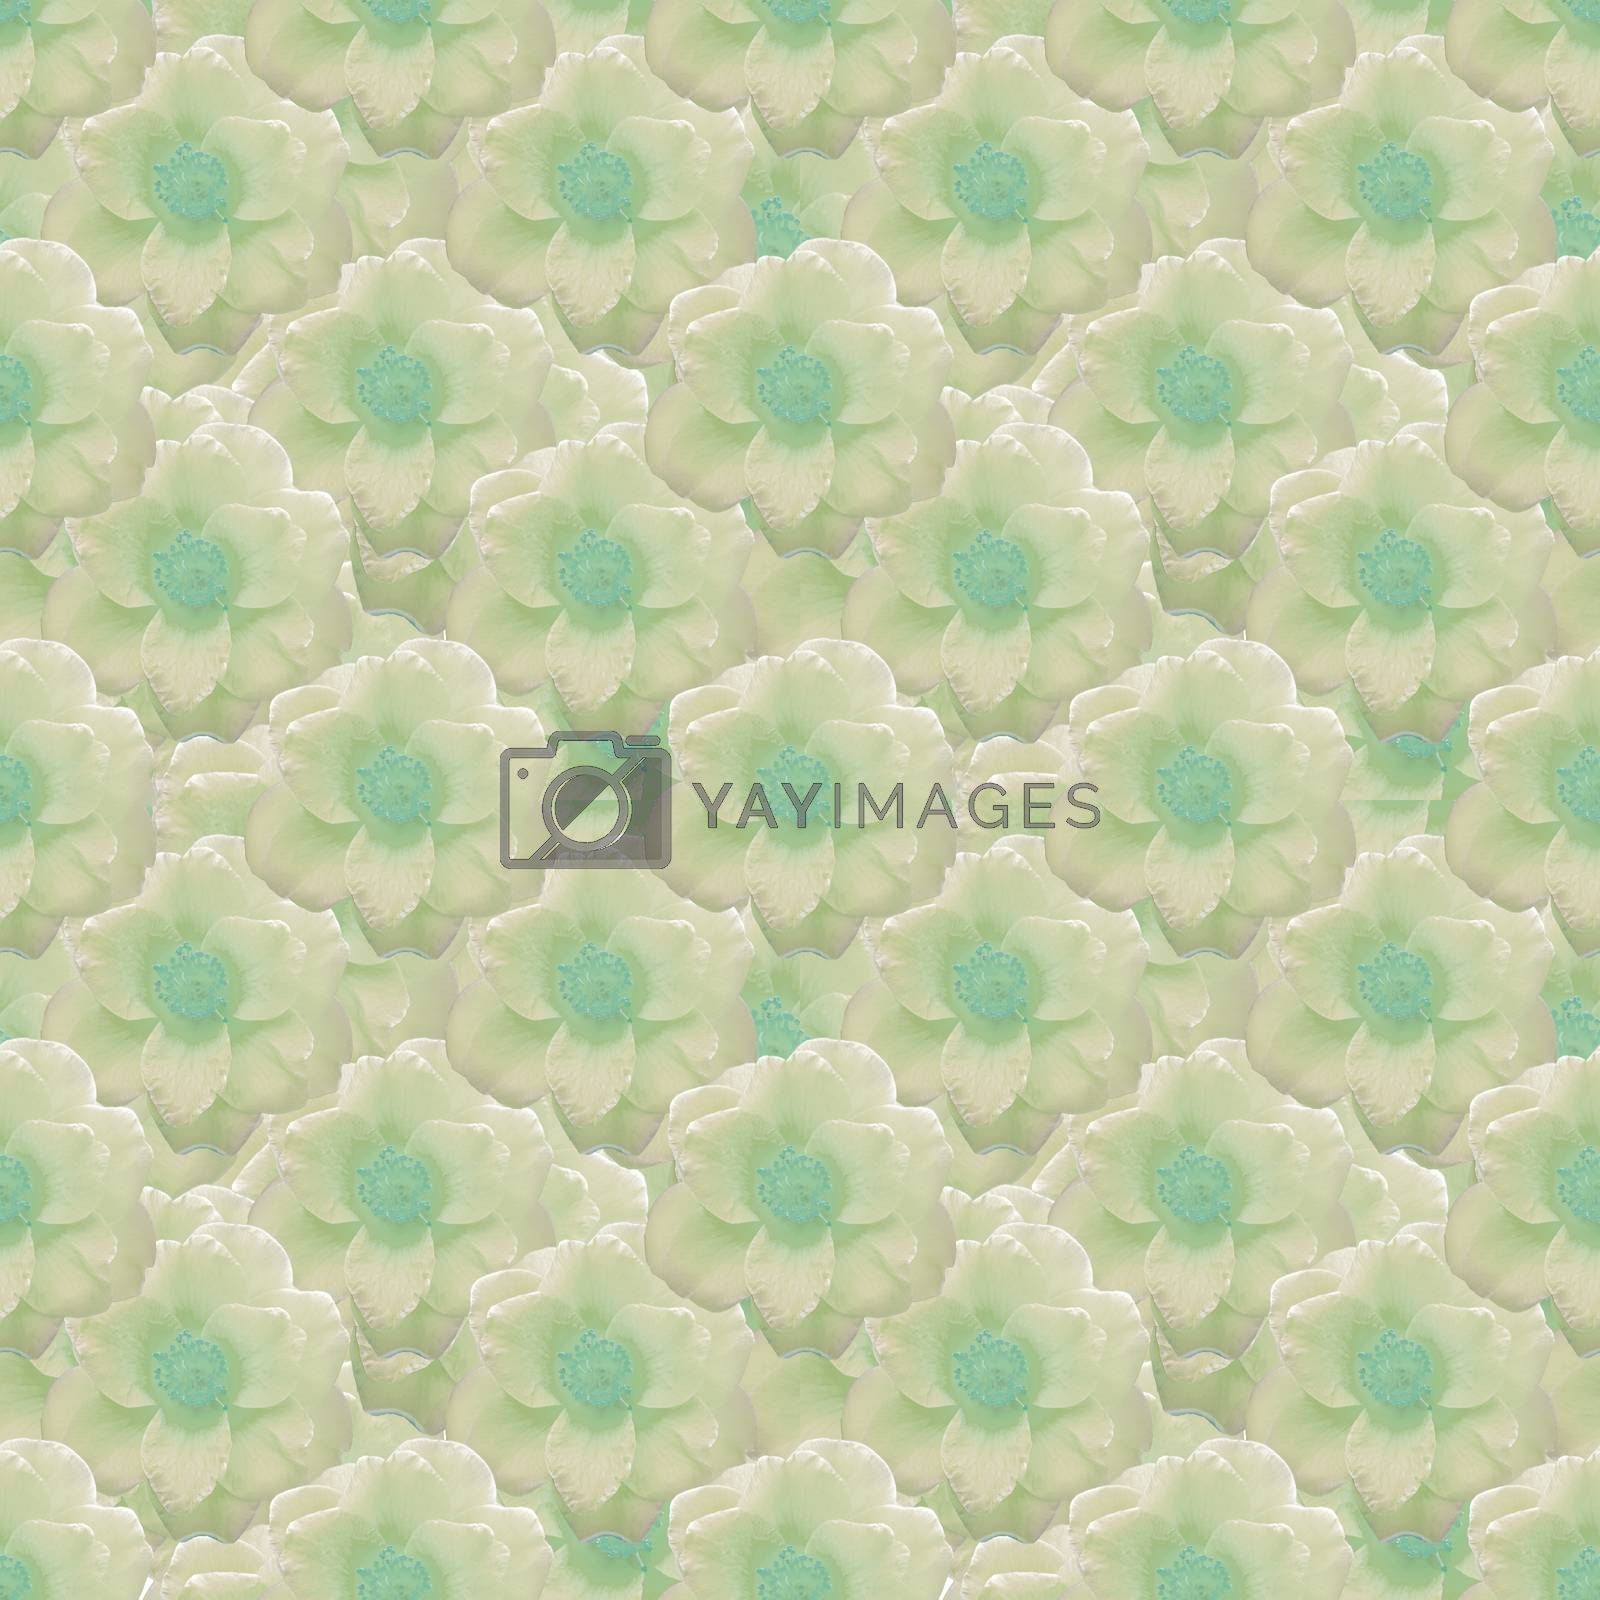 Royalty free image of Pale Colors Stylized Flowers Motif Seamless Pattern by DanFLCreative